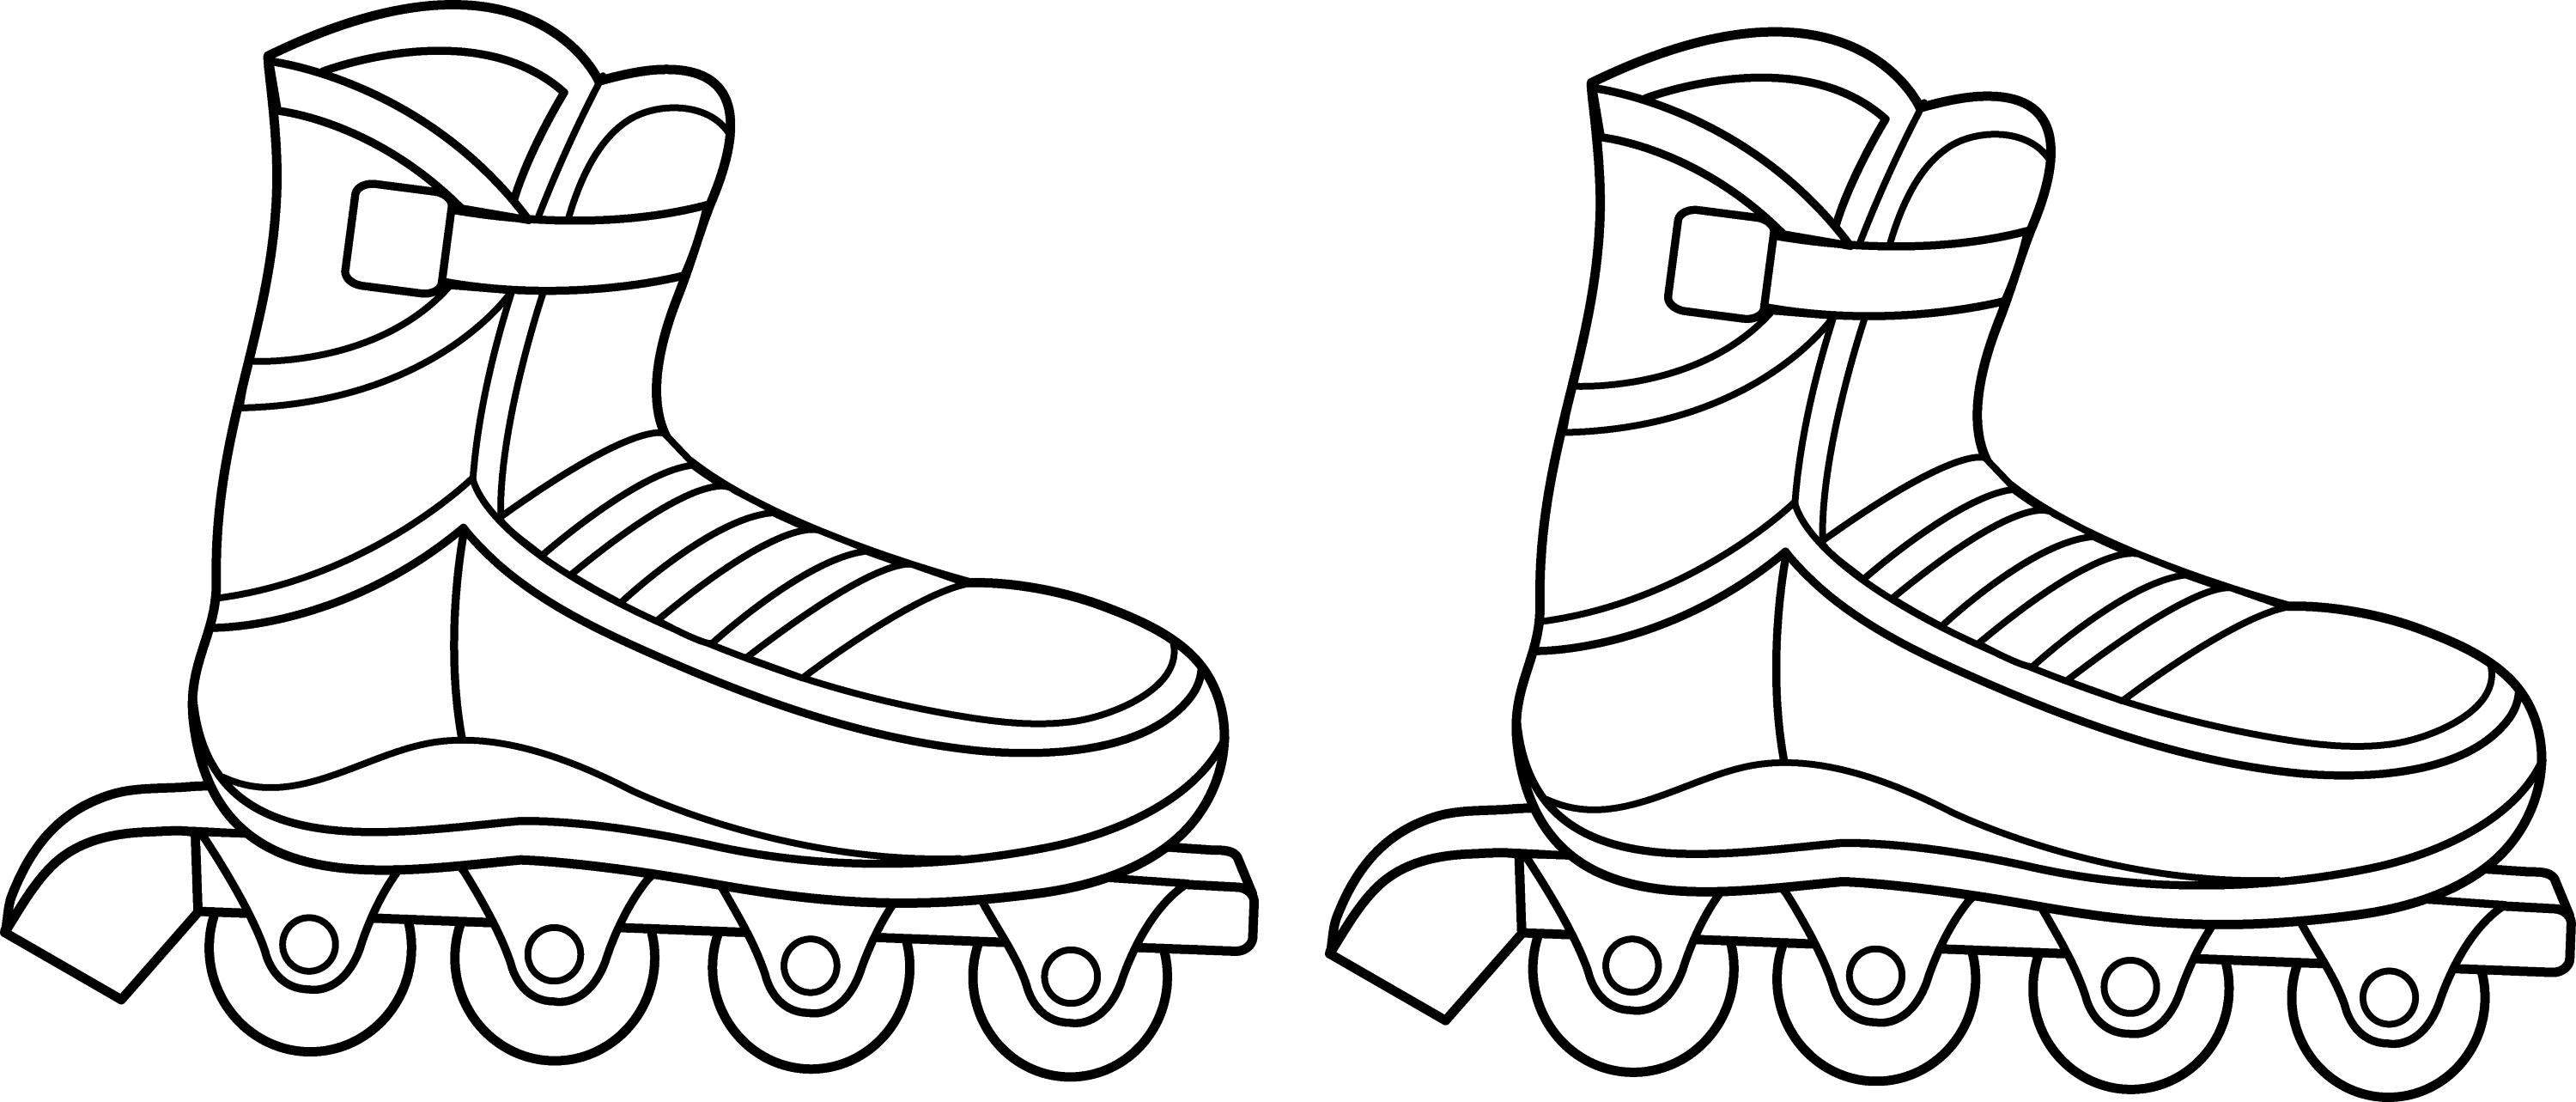 Rollerblades Colorable Line Art Free Clip Art Roller Skate Coloring Page